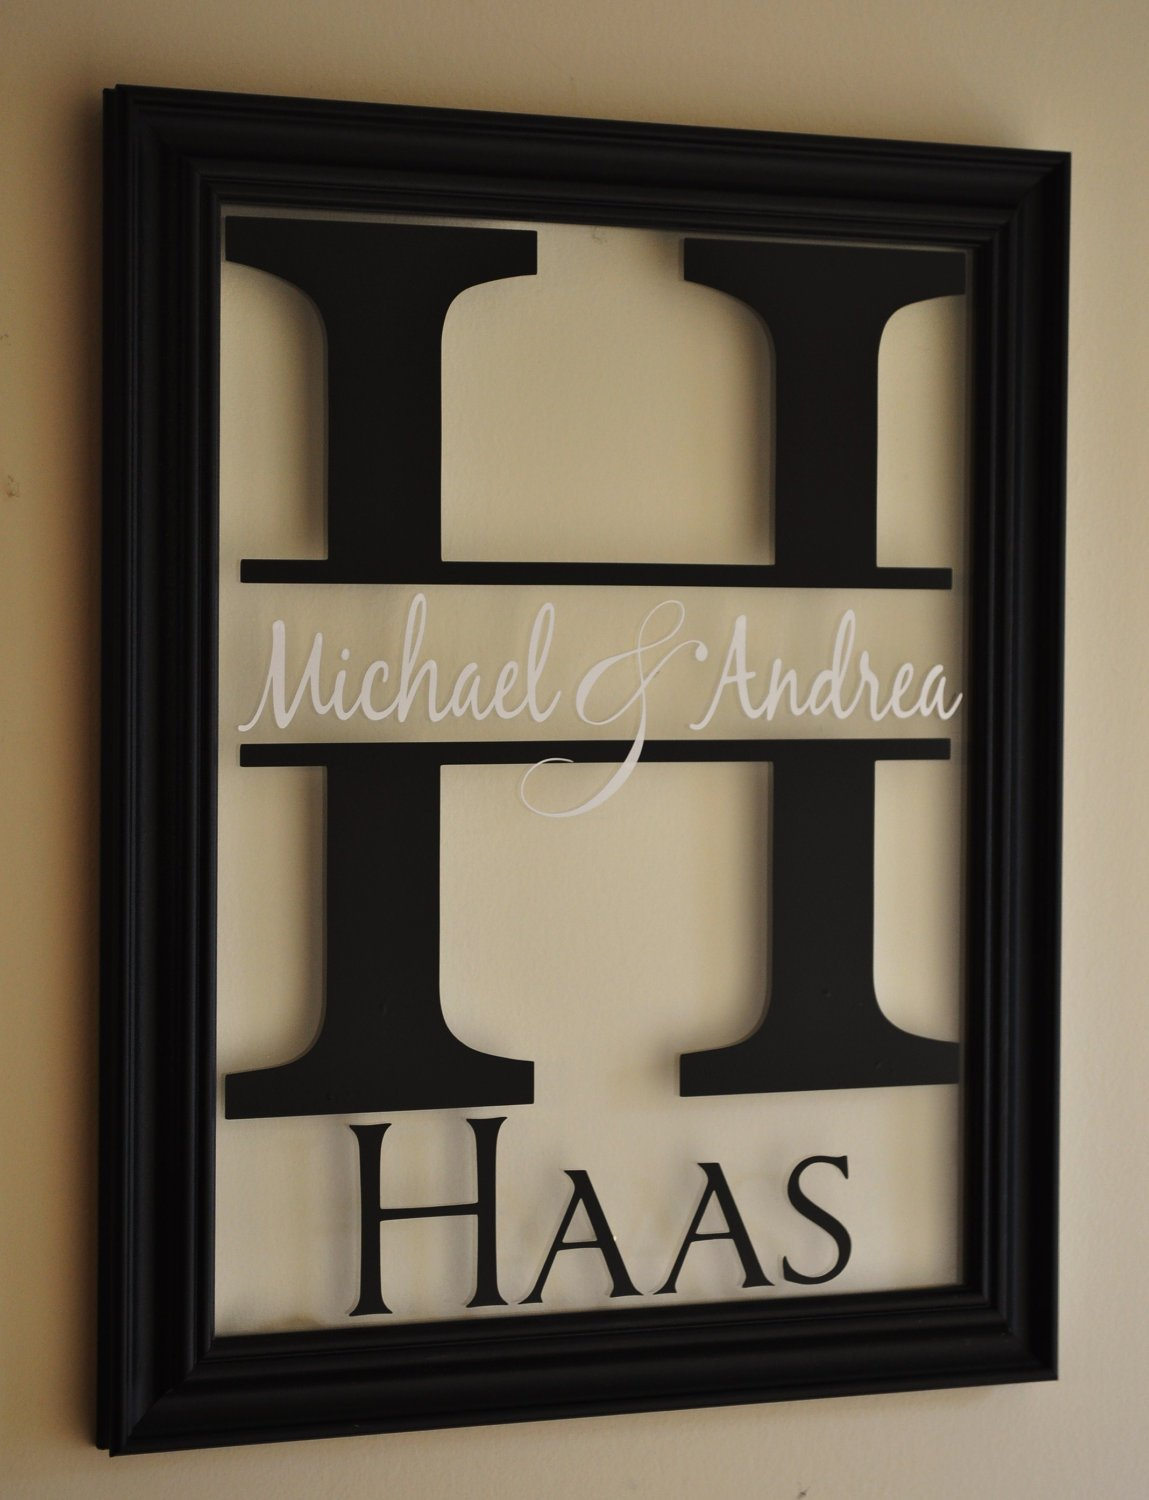 MRC Wood Products Personalized Family Name Sign Picture Frame 13x16 The Mitford by MRC Wood Products